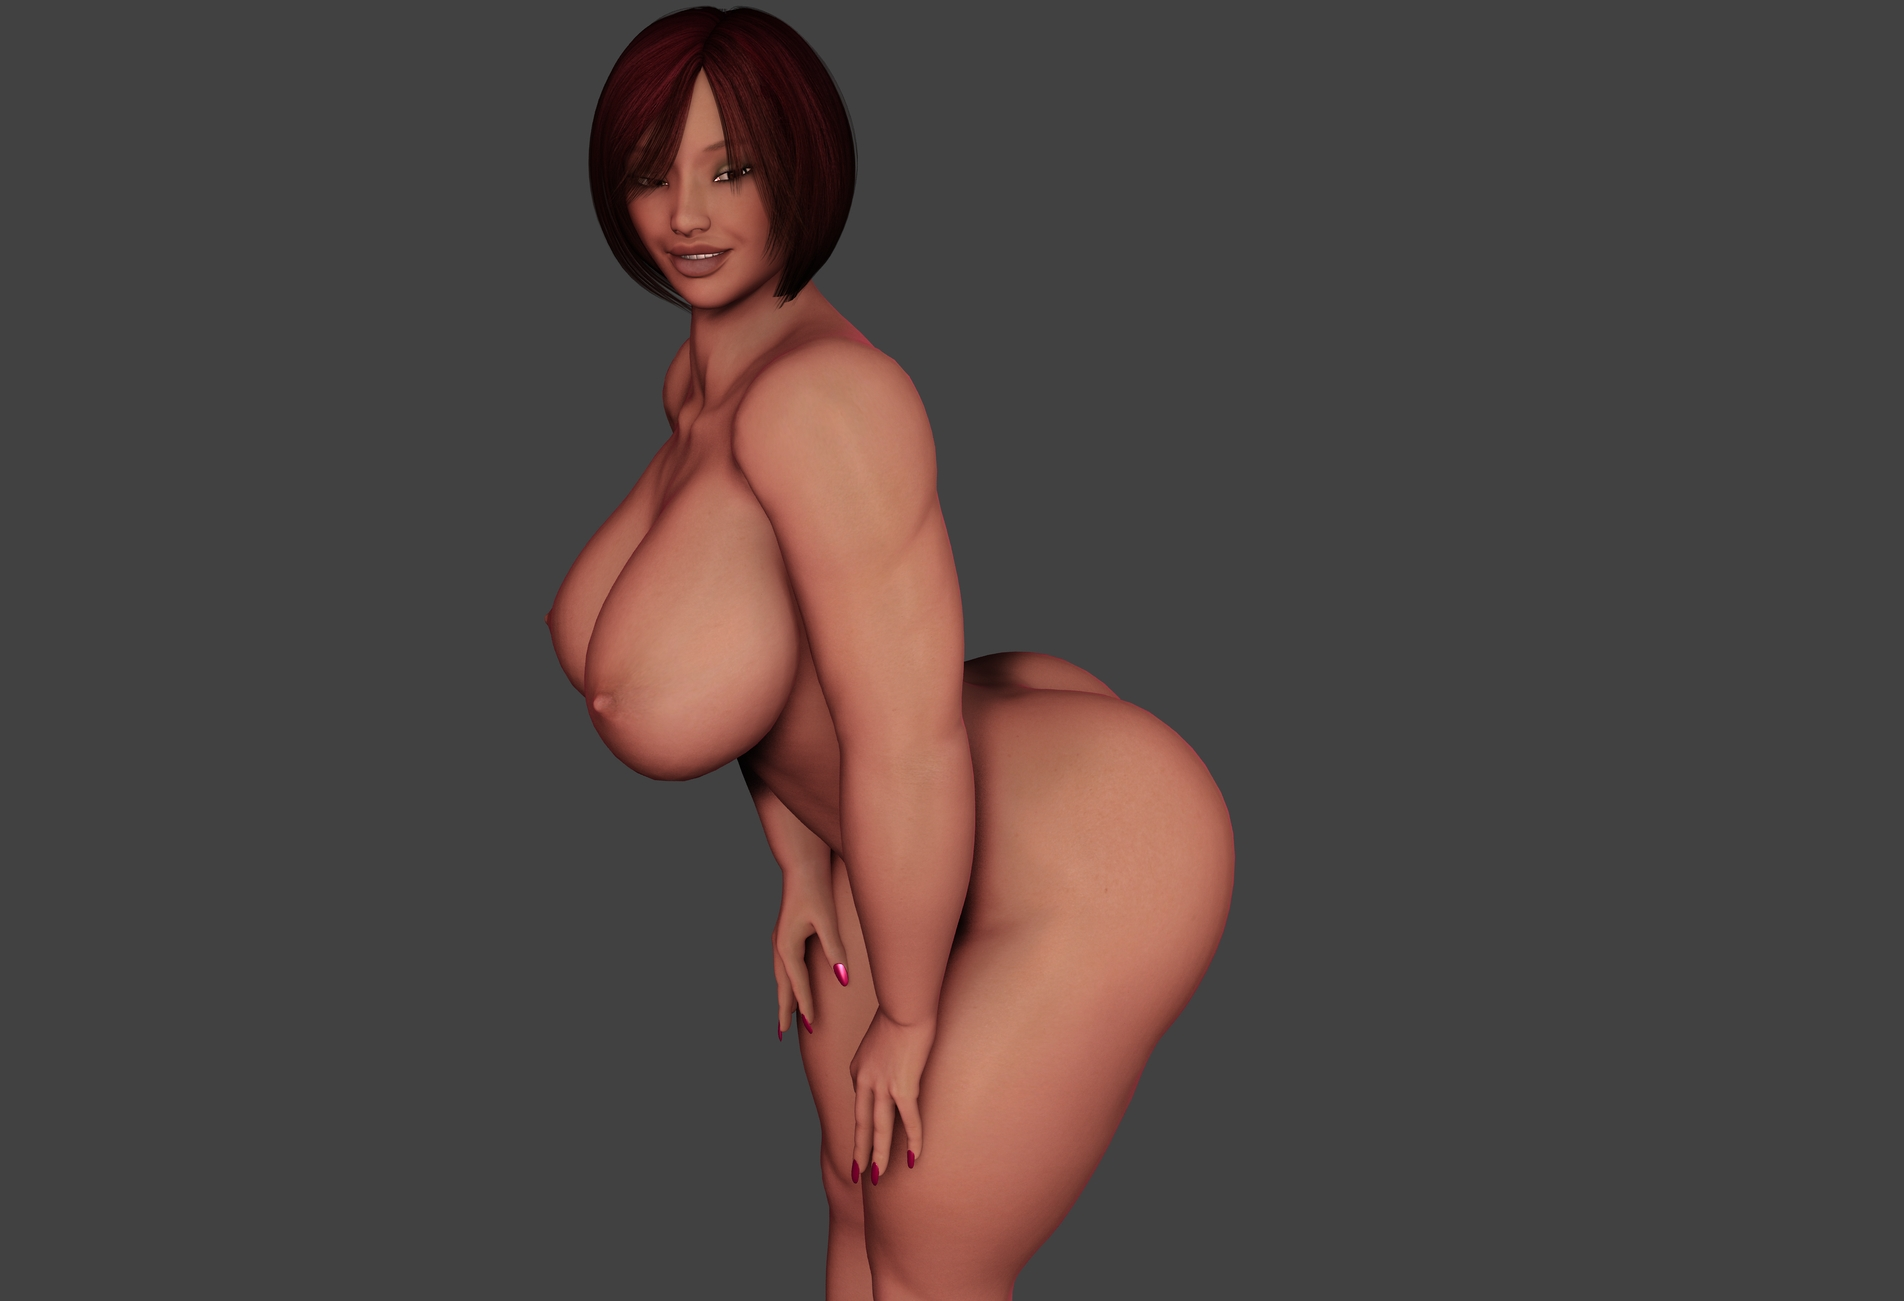 Hd 3d big boobs sexy image